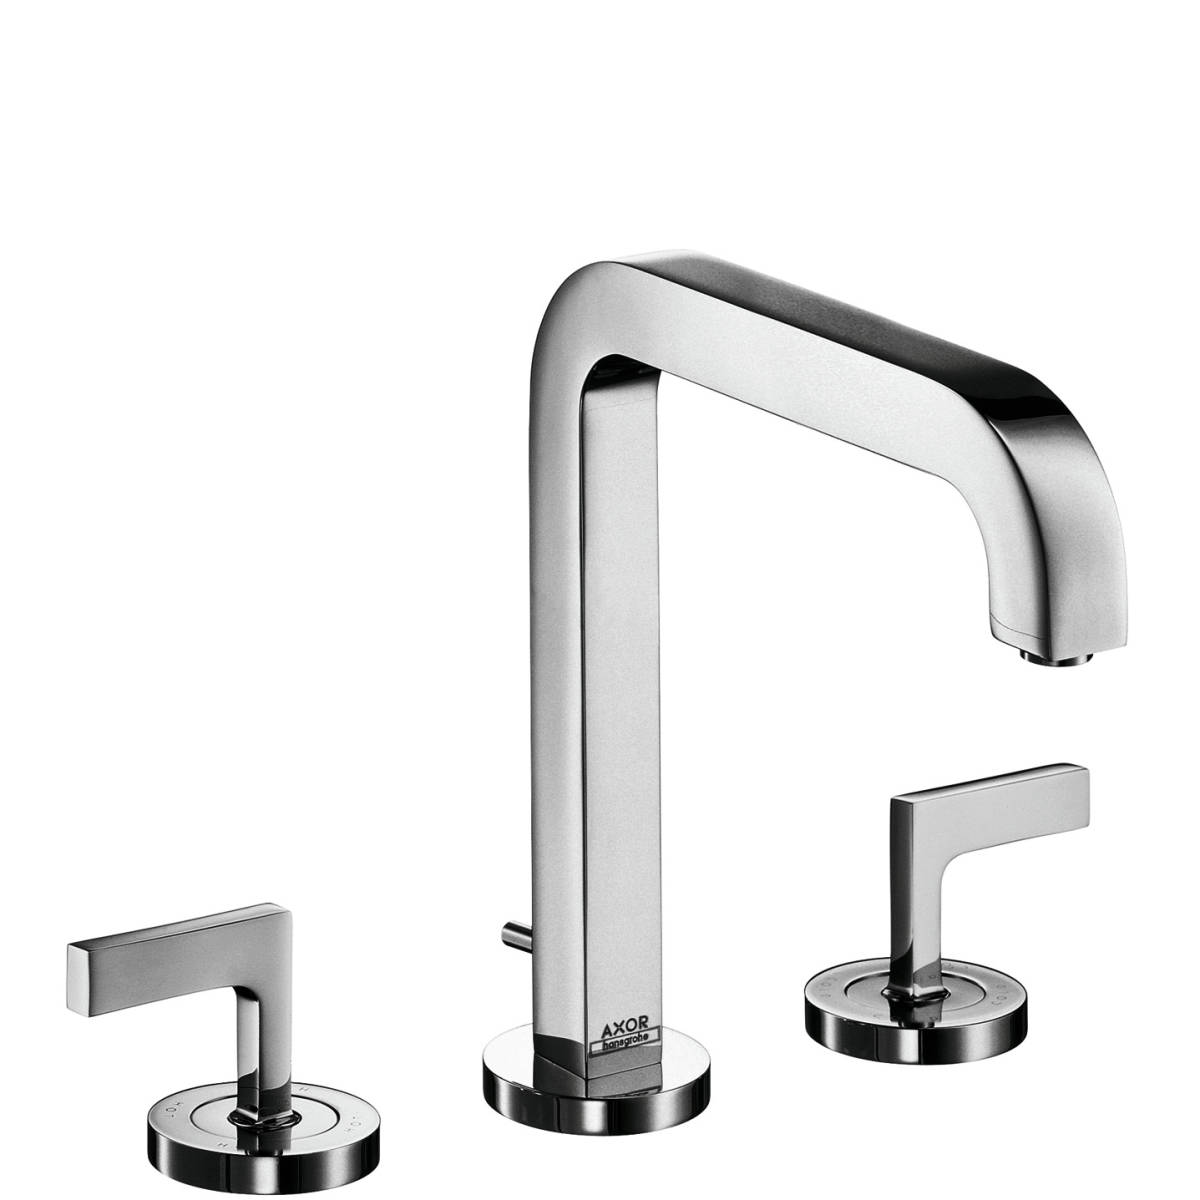 3-hole basin mixer 170 with spout 205 mm, lever handles, escutcheons and pop-up waste set, Chrome, 39155000